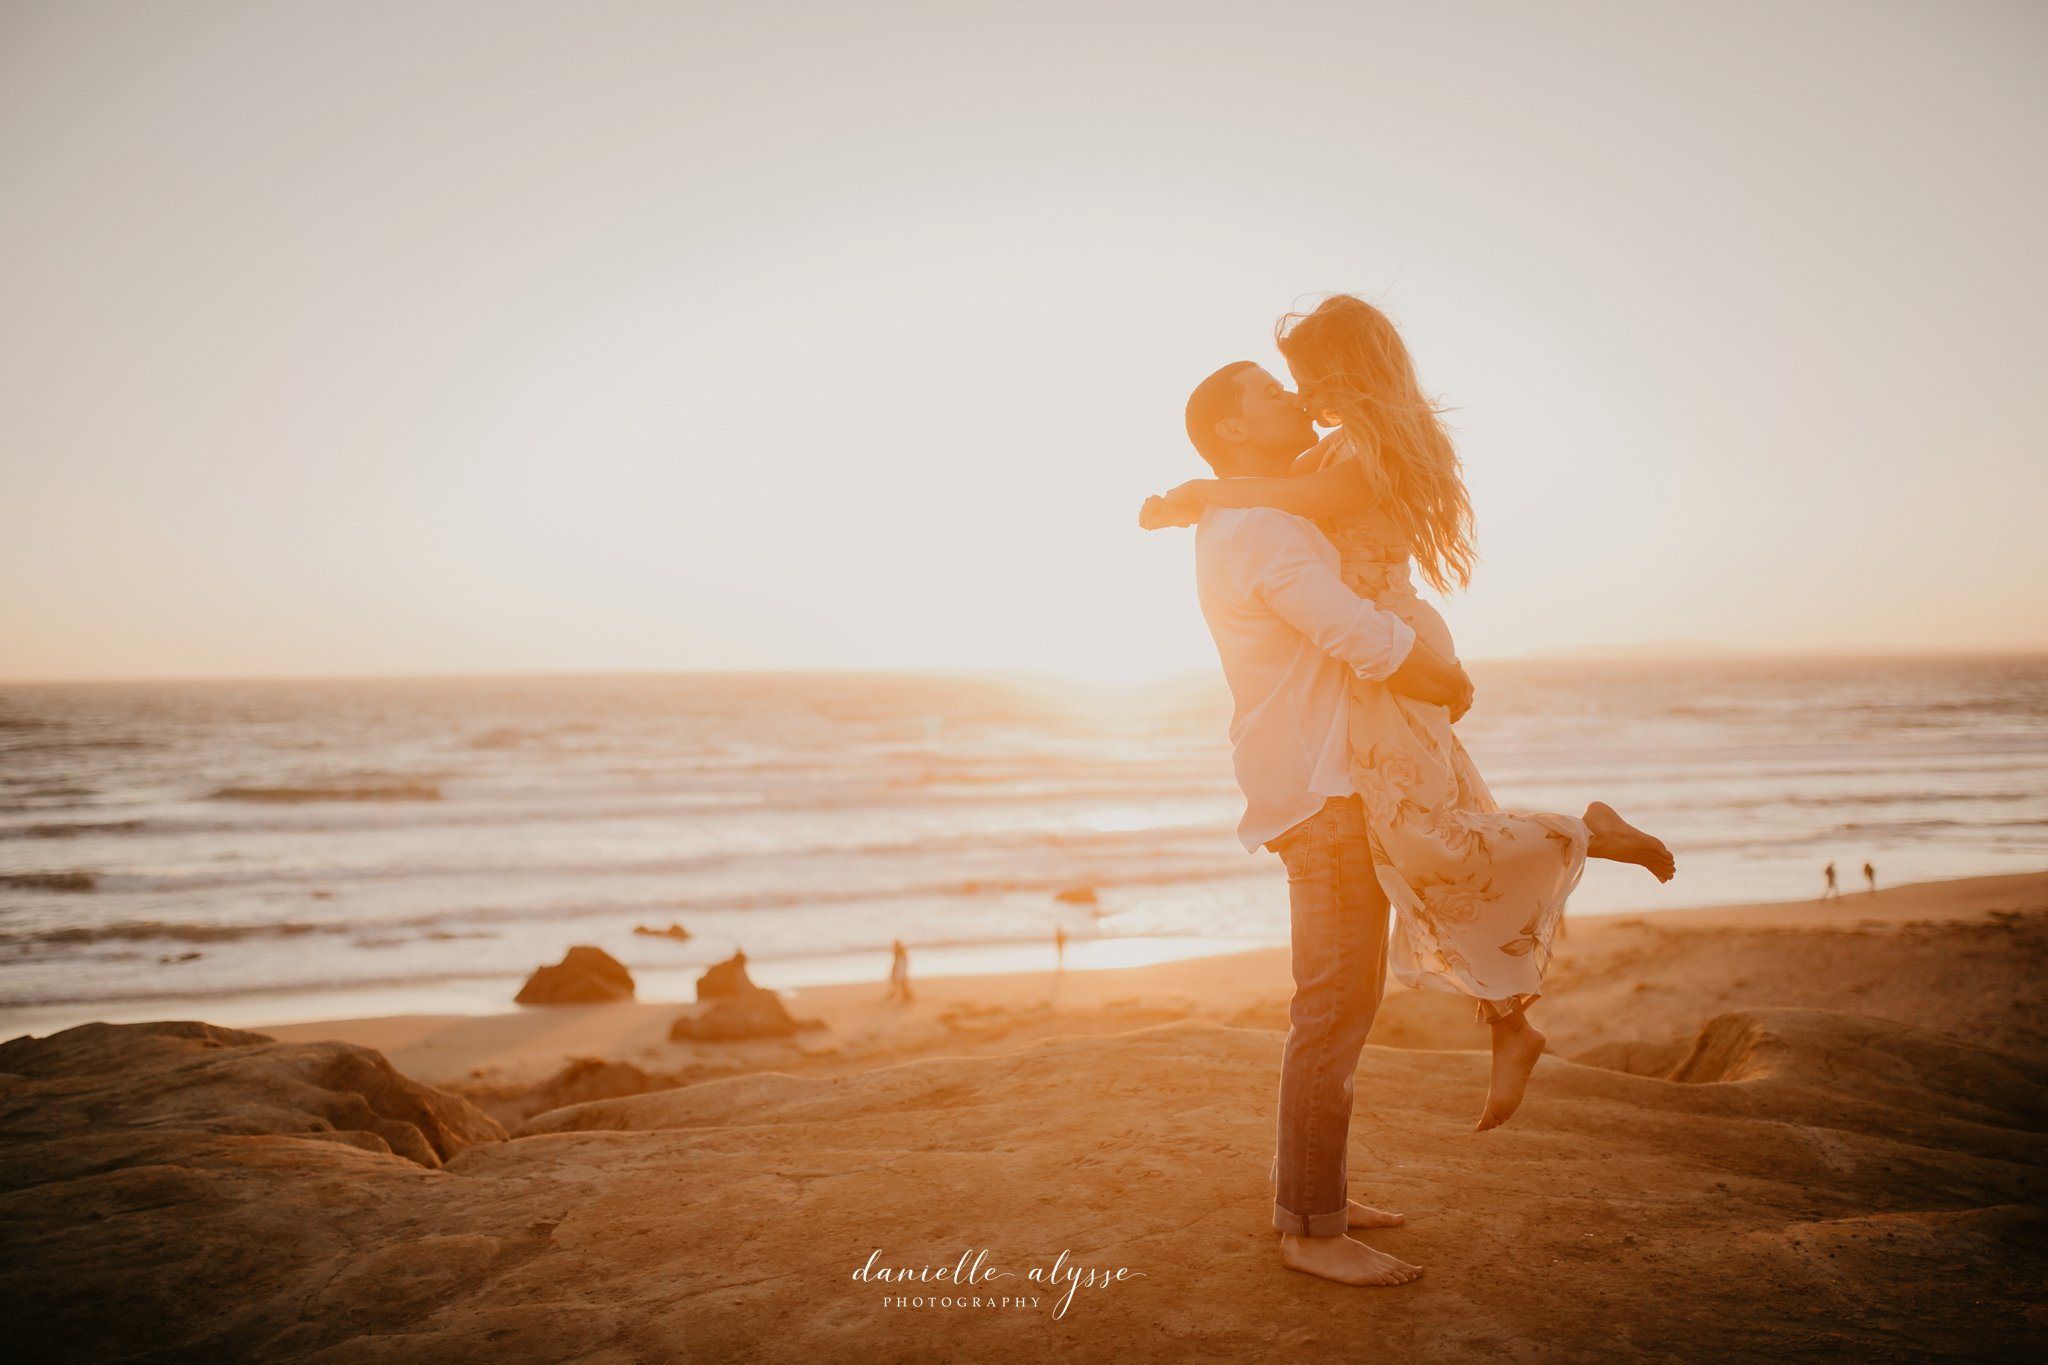 180804_engagement_katie_matt_dillon_beach_napa_danielle_alysse_photography_blog_78_WEB.jpg